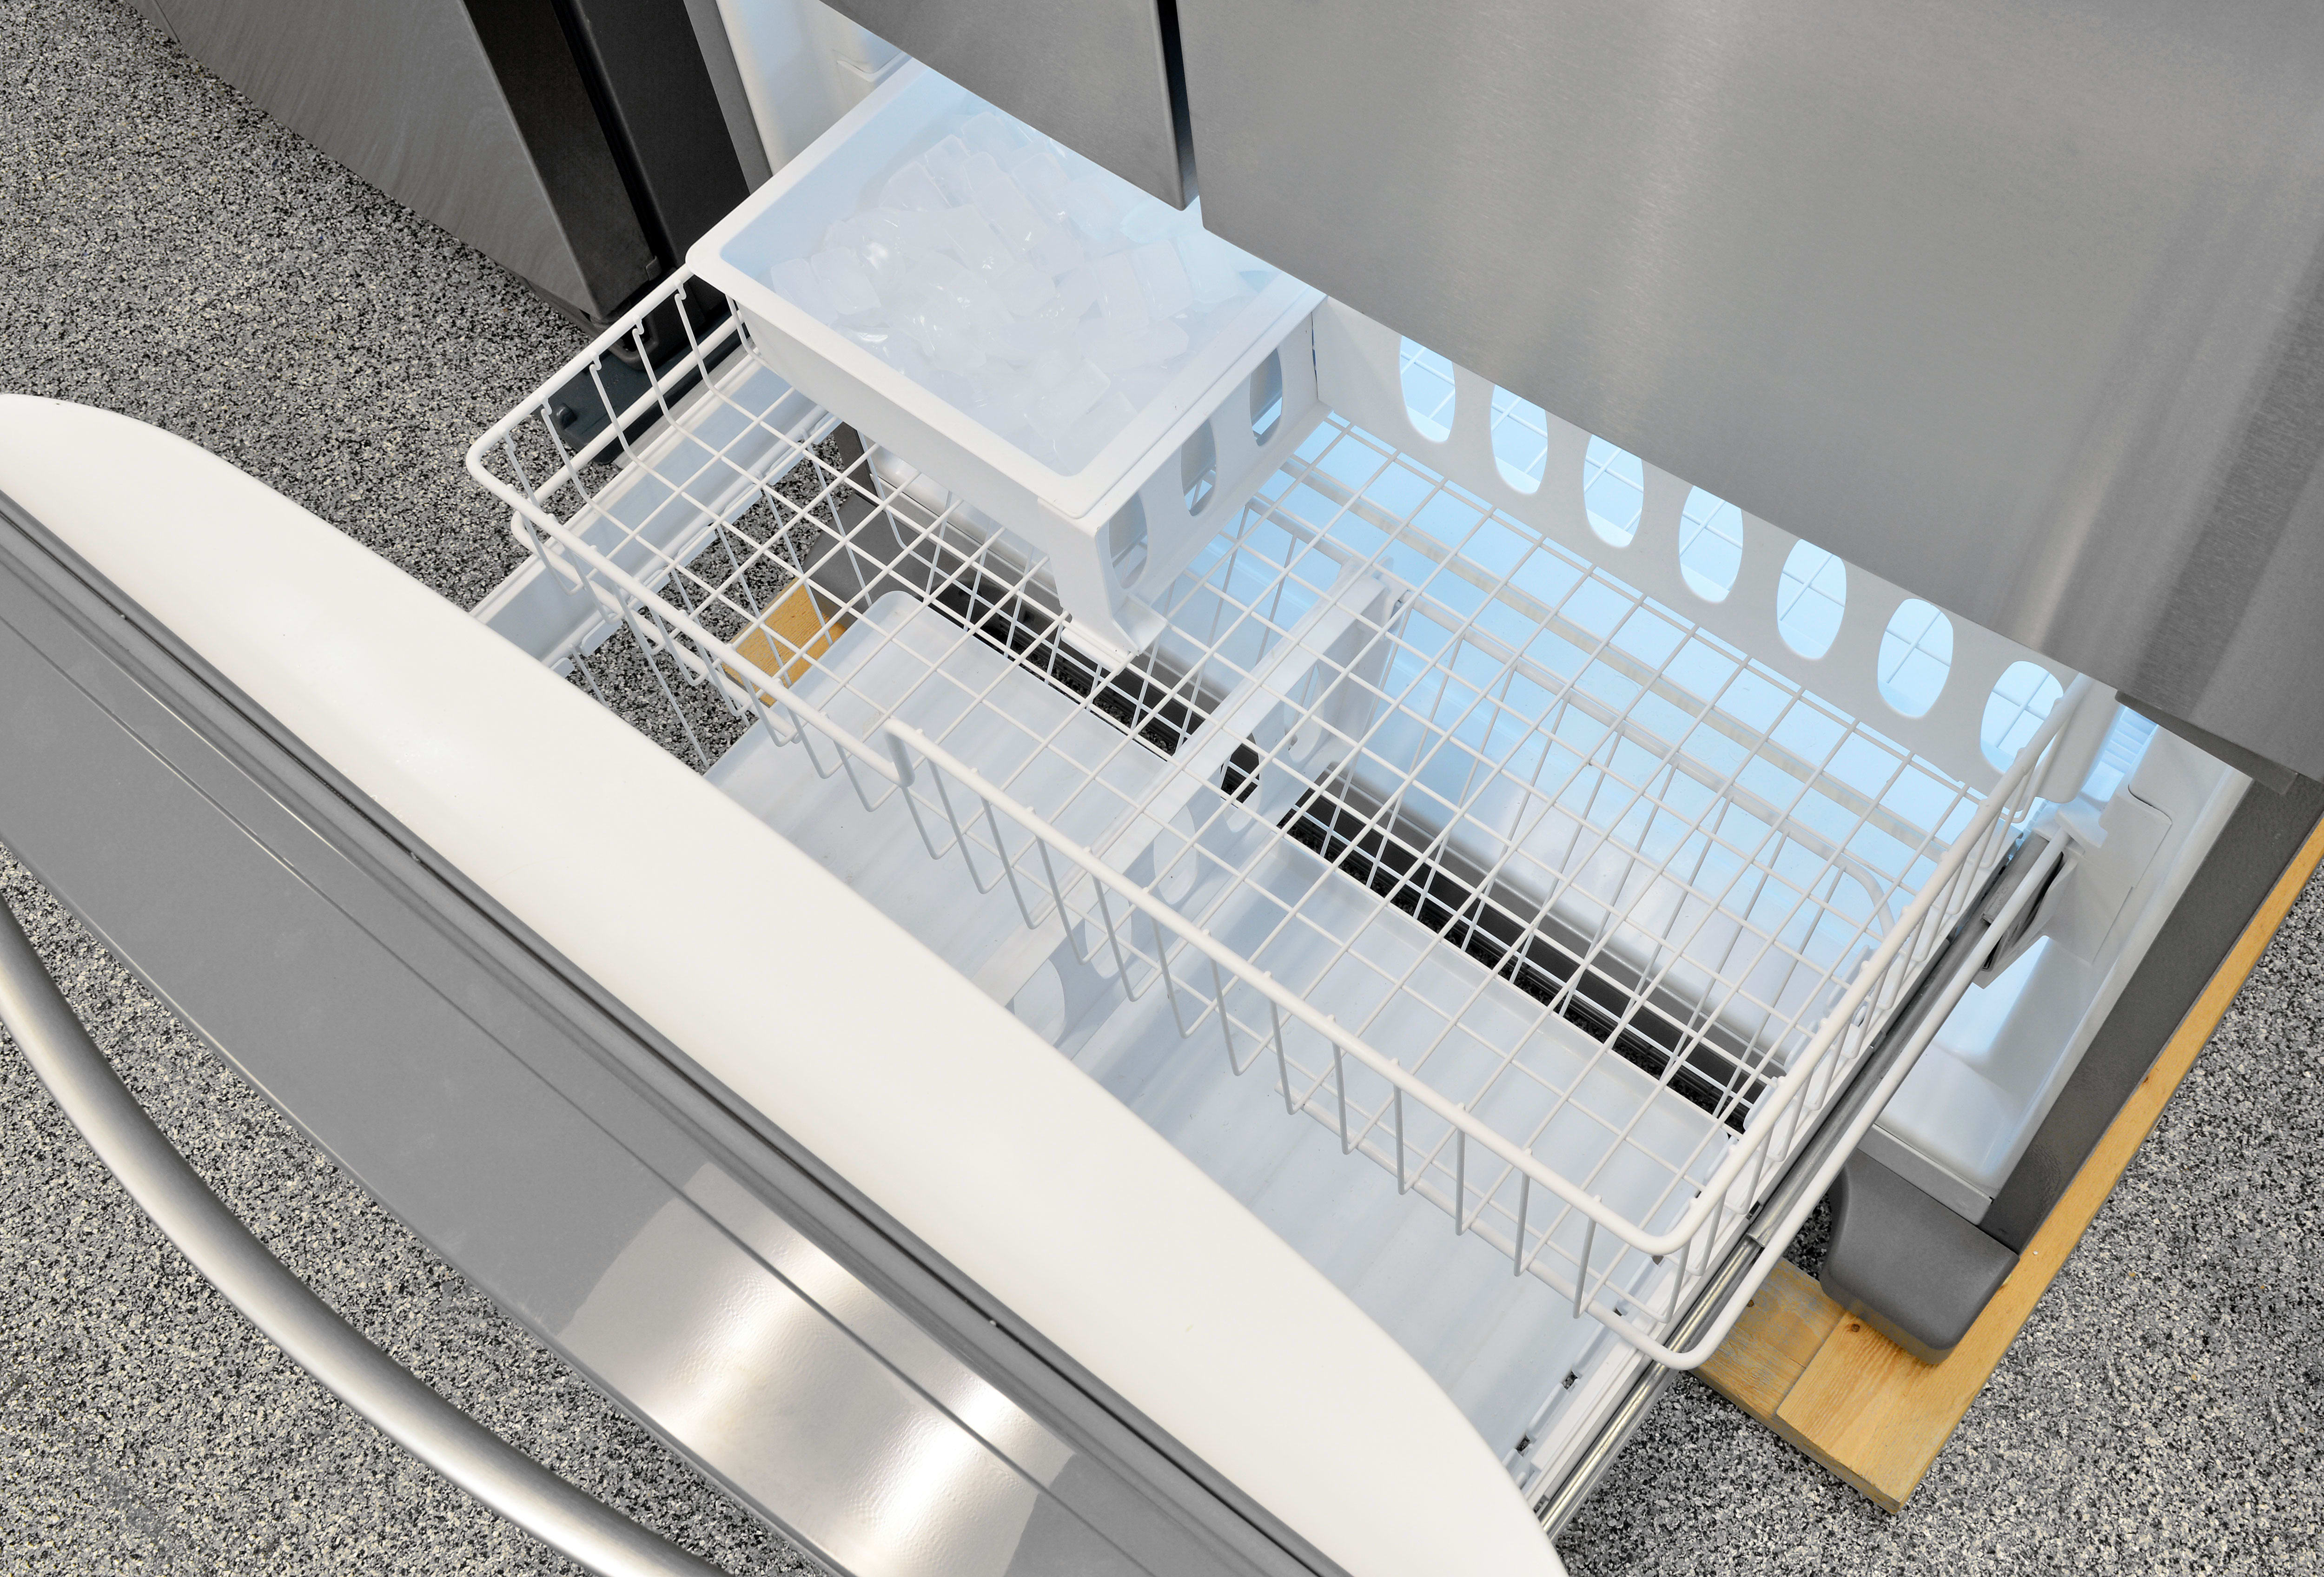 The Whirlpool WRF535SMBM's wire drawer in the freezer is one of the few visual elements in this model indicative of its lower price.